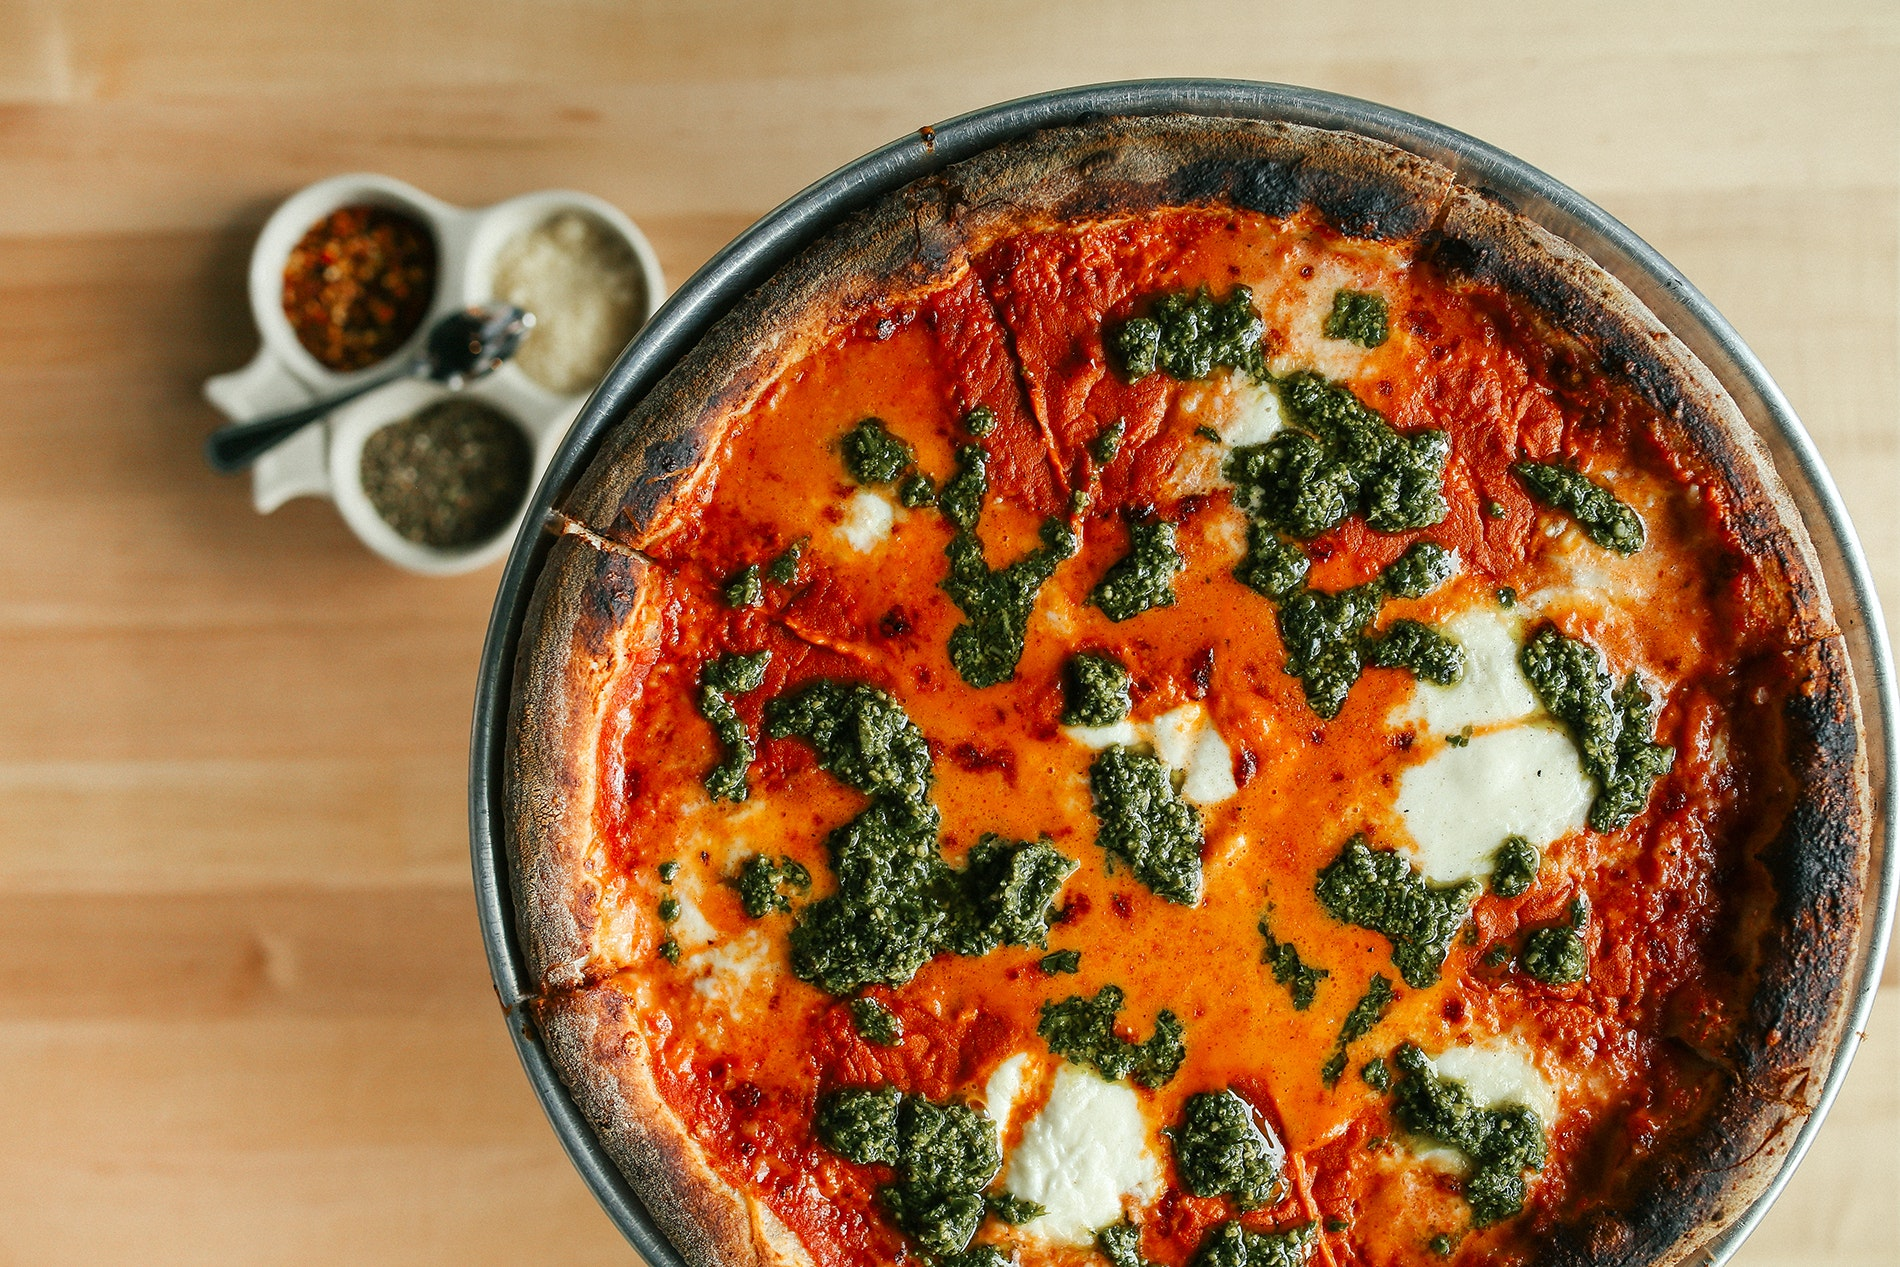 Lincoln Park's Pizzeria Bebu turns out uniformly crispy and perfectly charred pies every time.